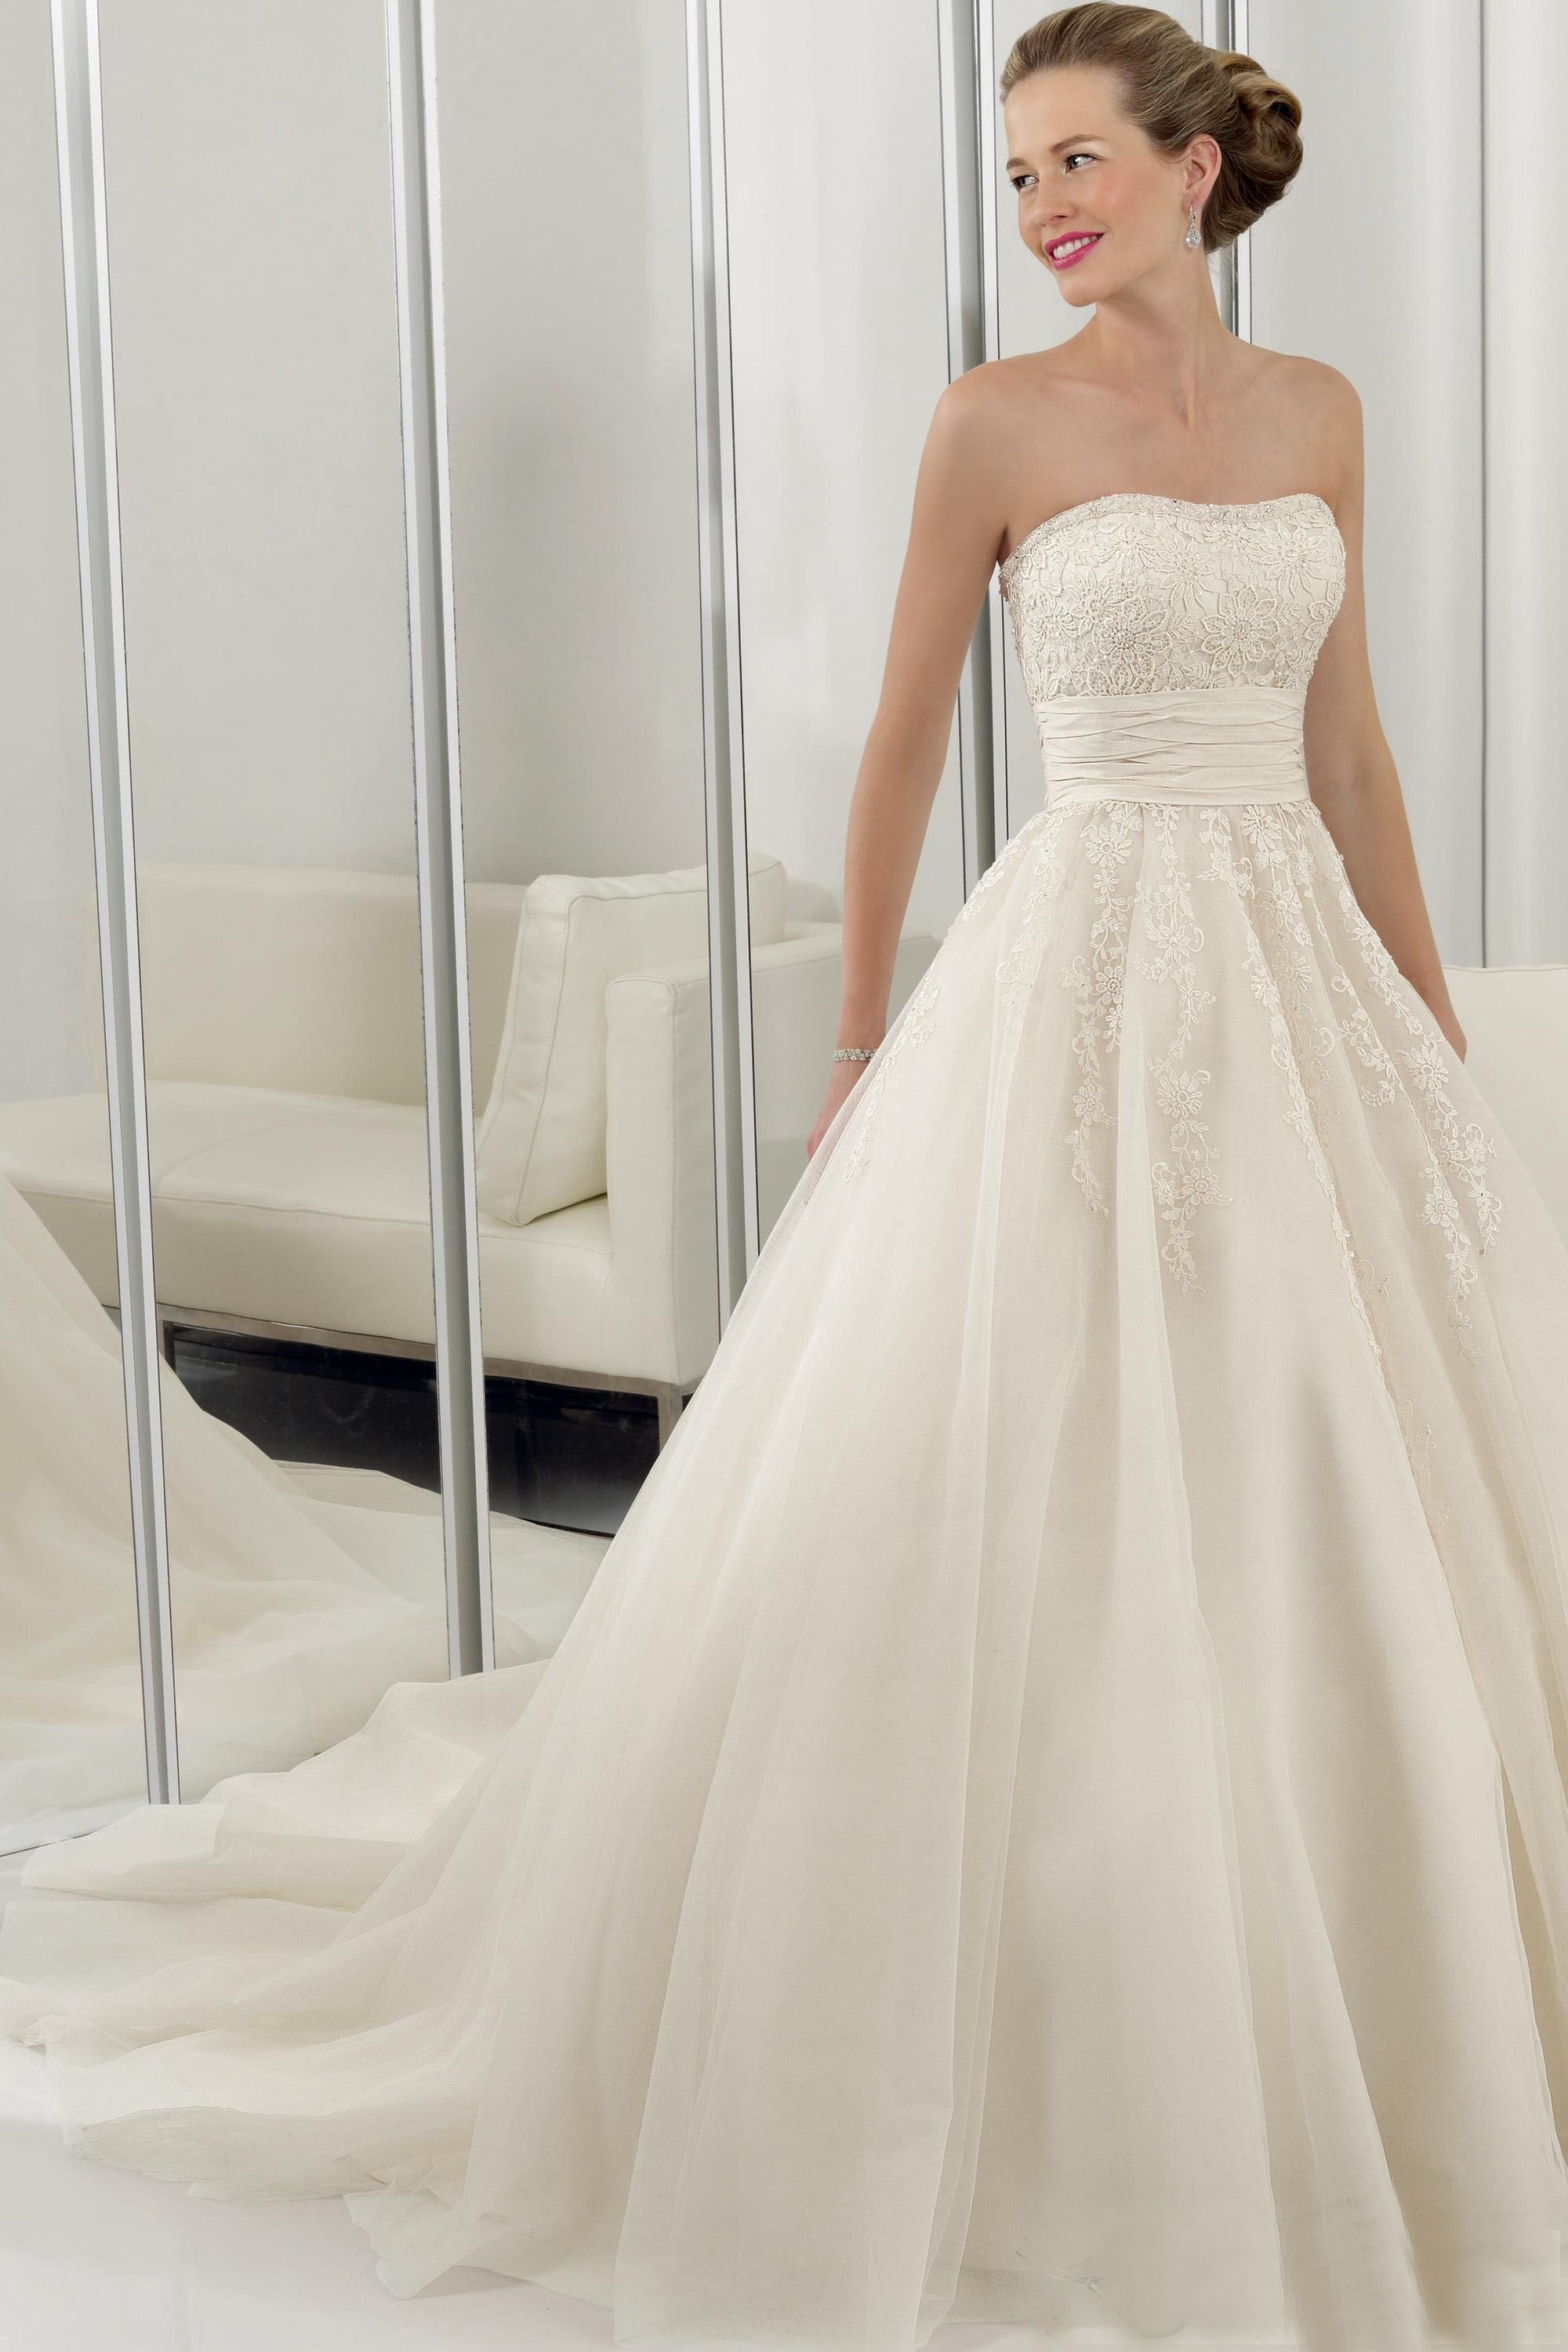 Flattering And Charming Bride Dresses For Special Day Wedding